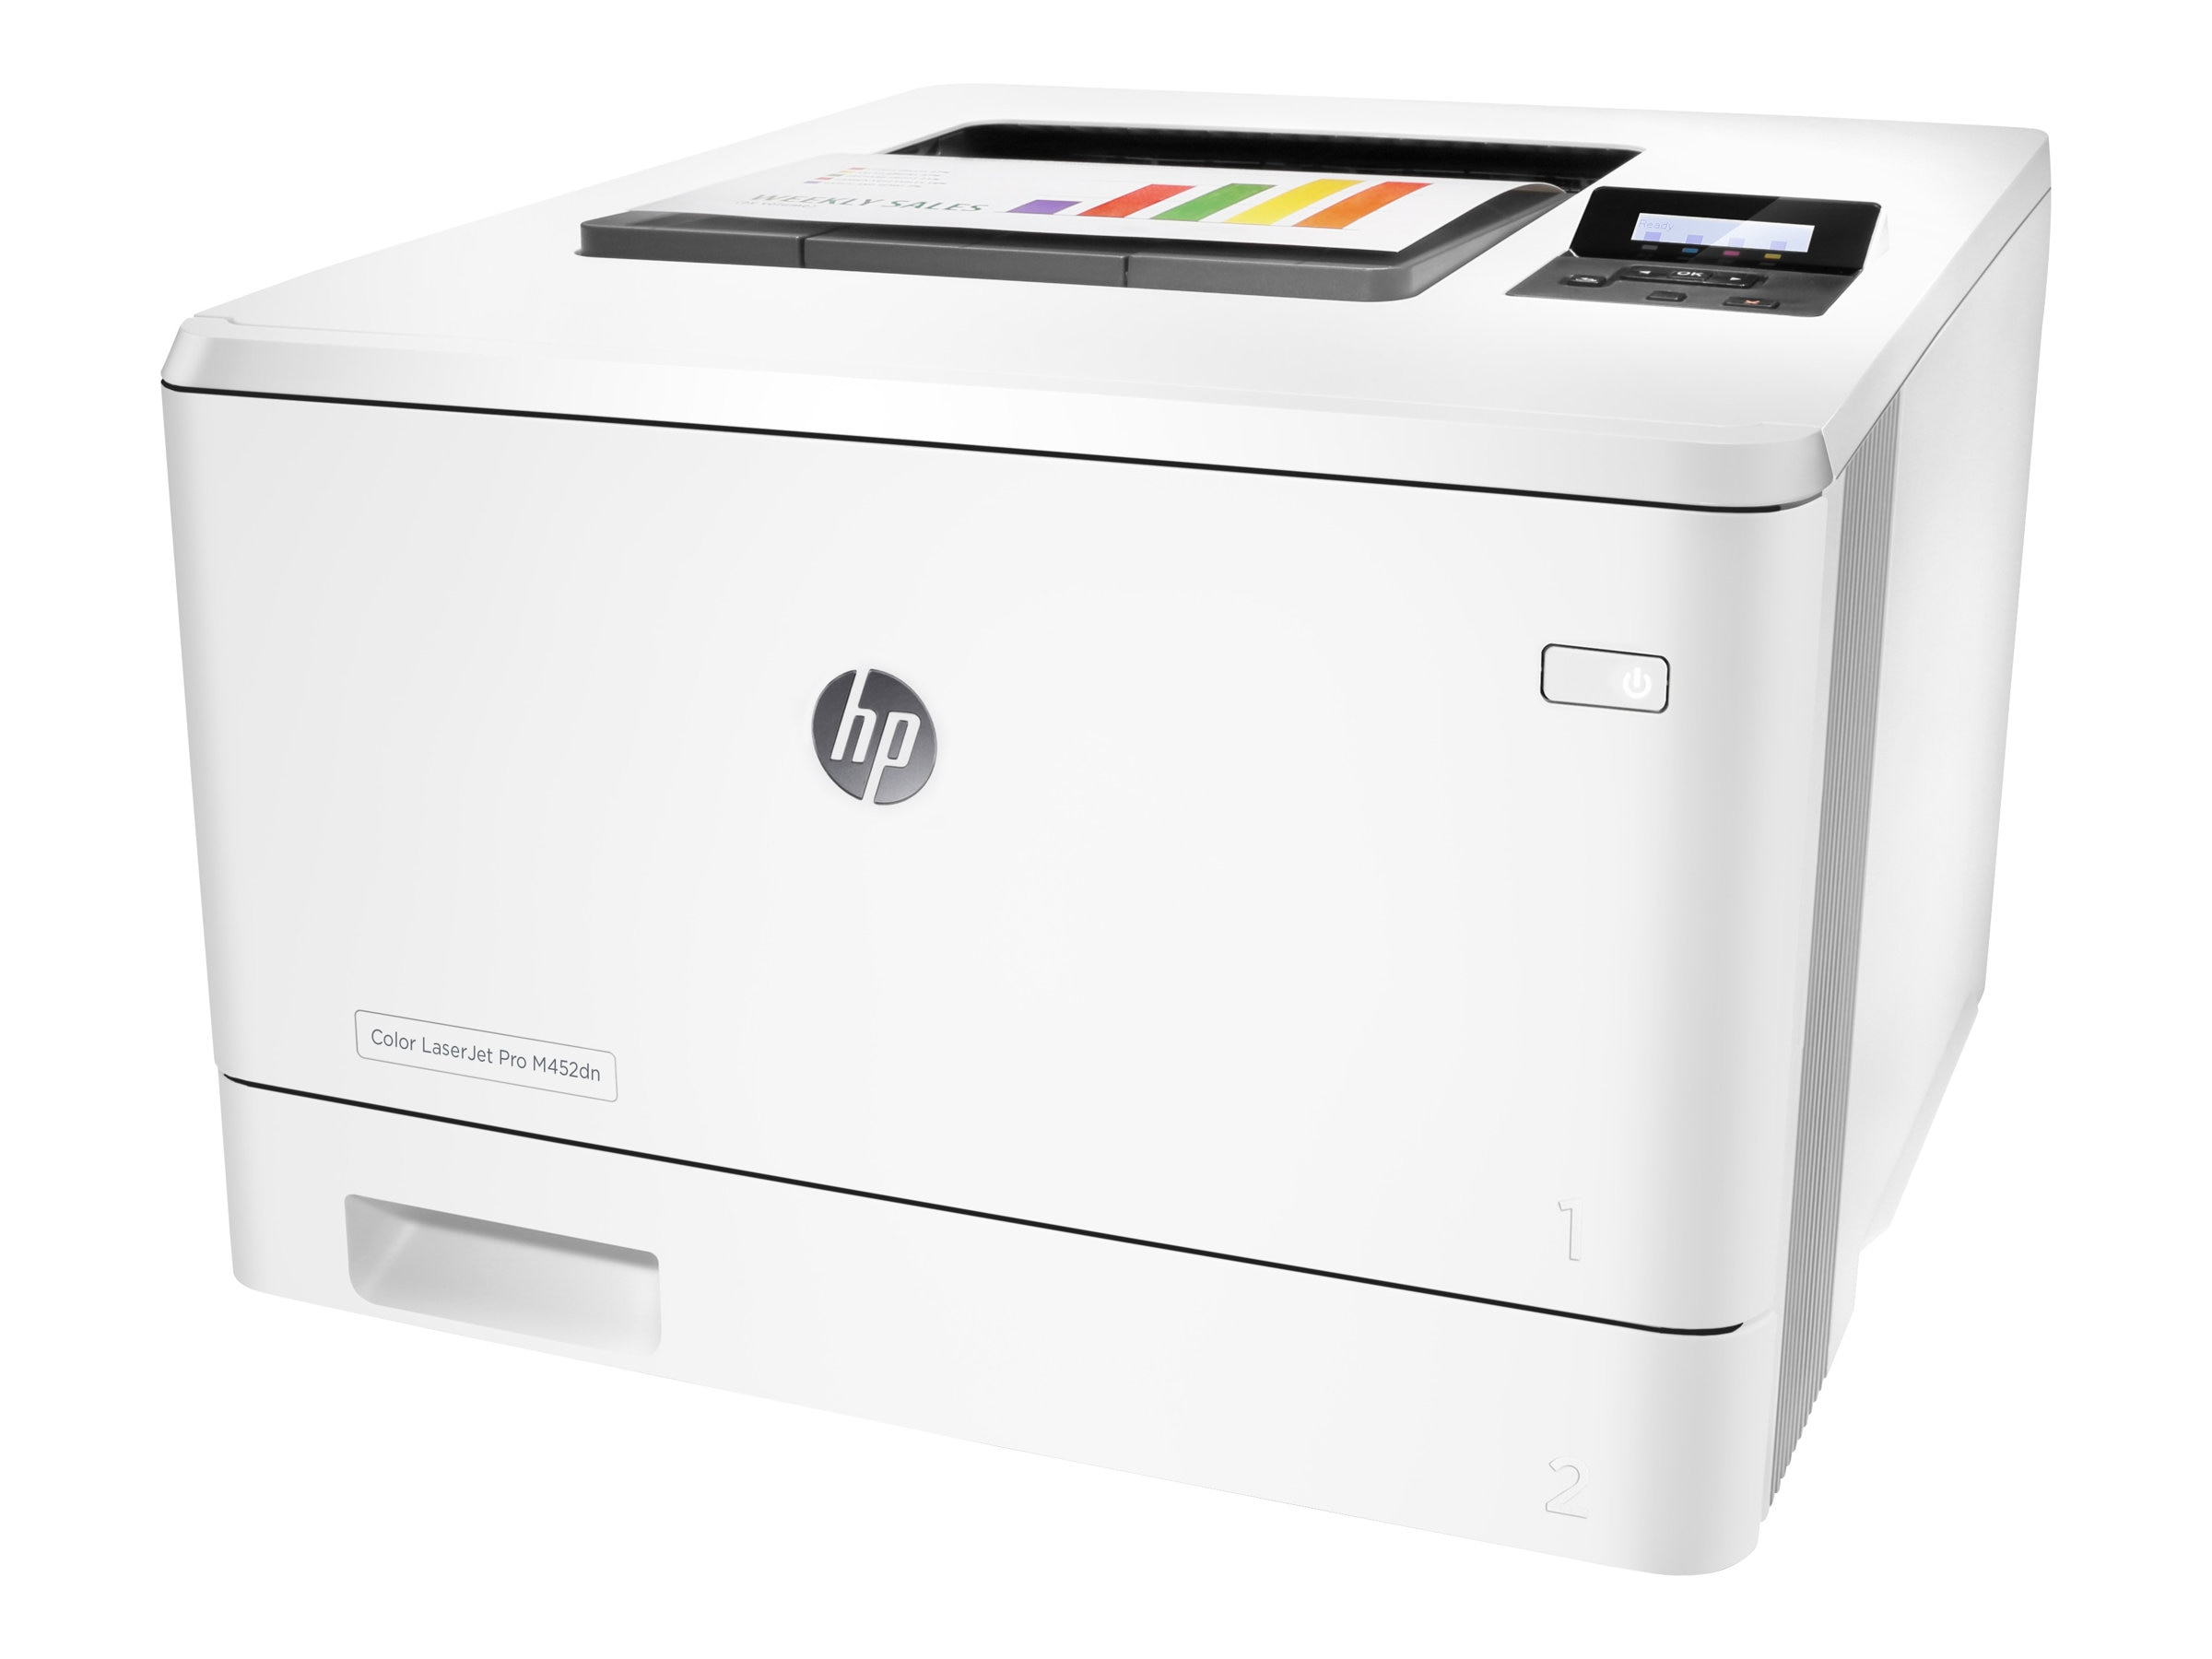 HP Color LaserJet Pro M452dn Printer ($449 - $200 Instant Rebate = $249 Expires 5 31 2016), CF389A#BGJ, 30617061, Printers - Laser & LED (color)